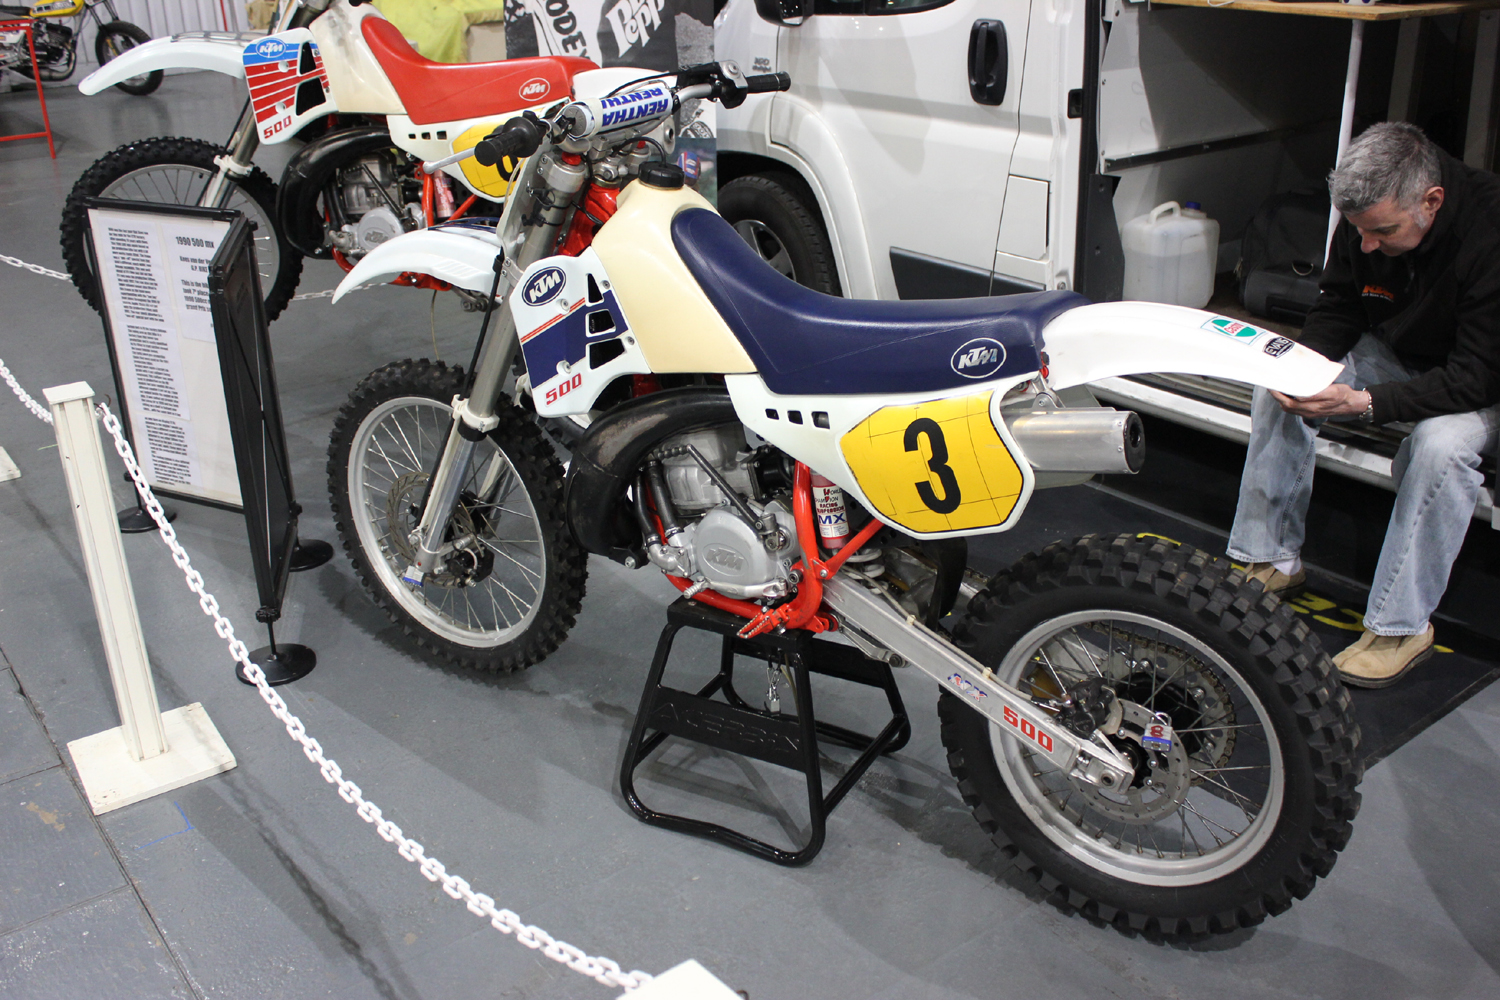 classicdirtbikerider.com-photo by Mr J-2015 Telford classic dirt bike show-1990s KTM 500 EVO MOTOCROSS BIKE